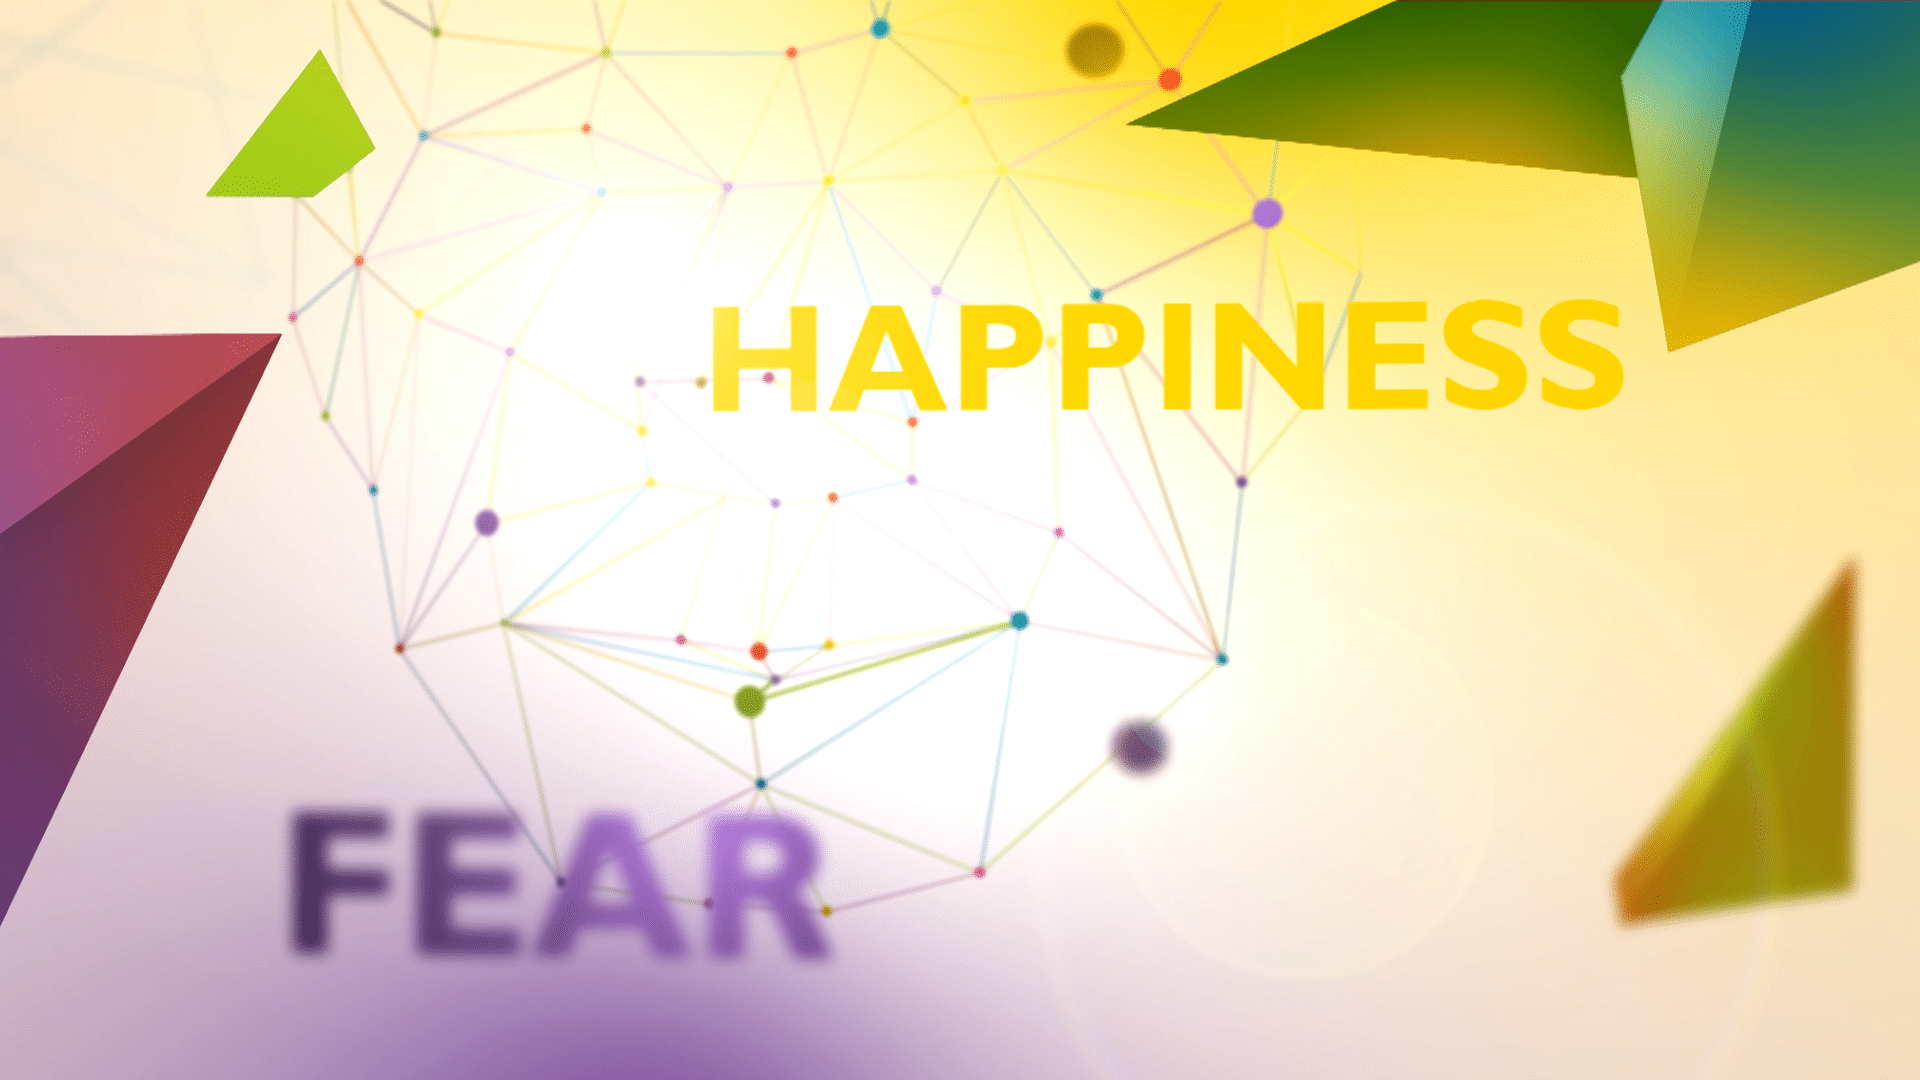 90 Second Animated Explainer Video - happiness and fear text on colourful background